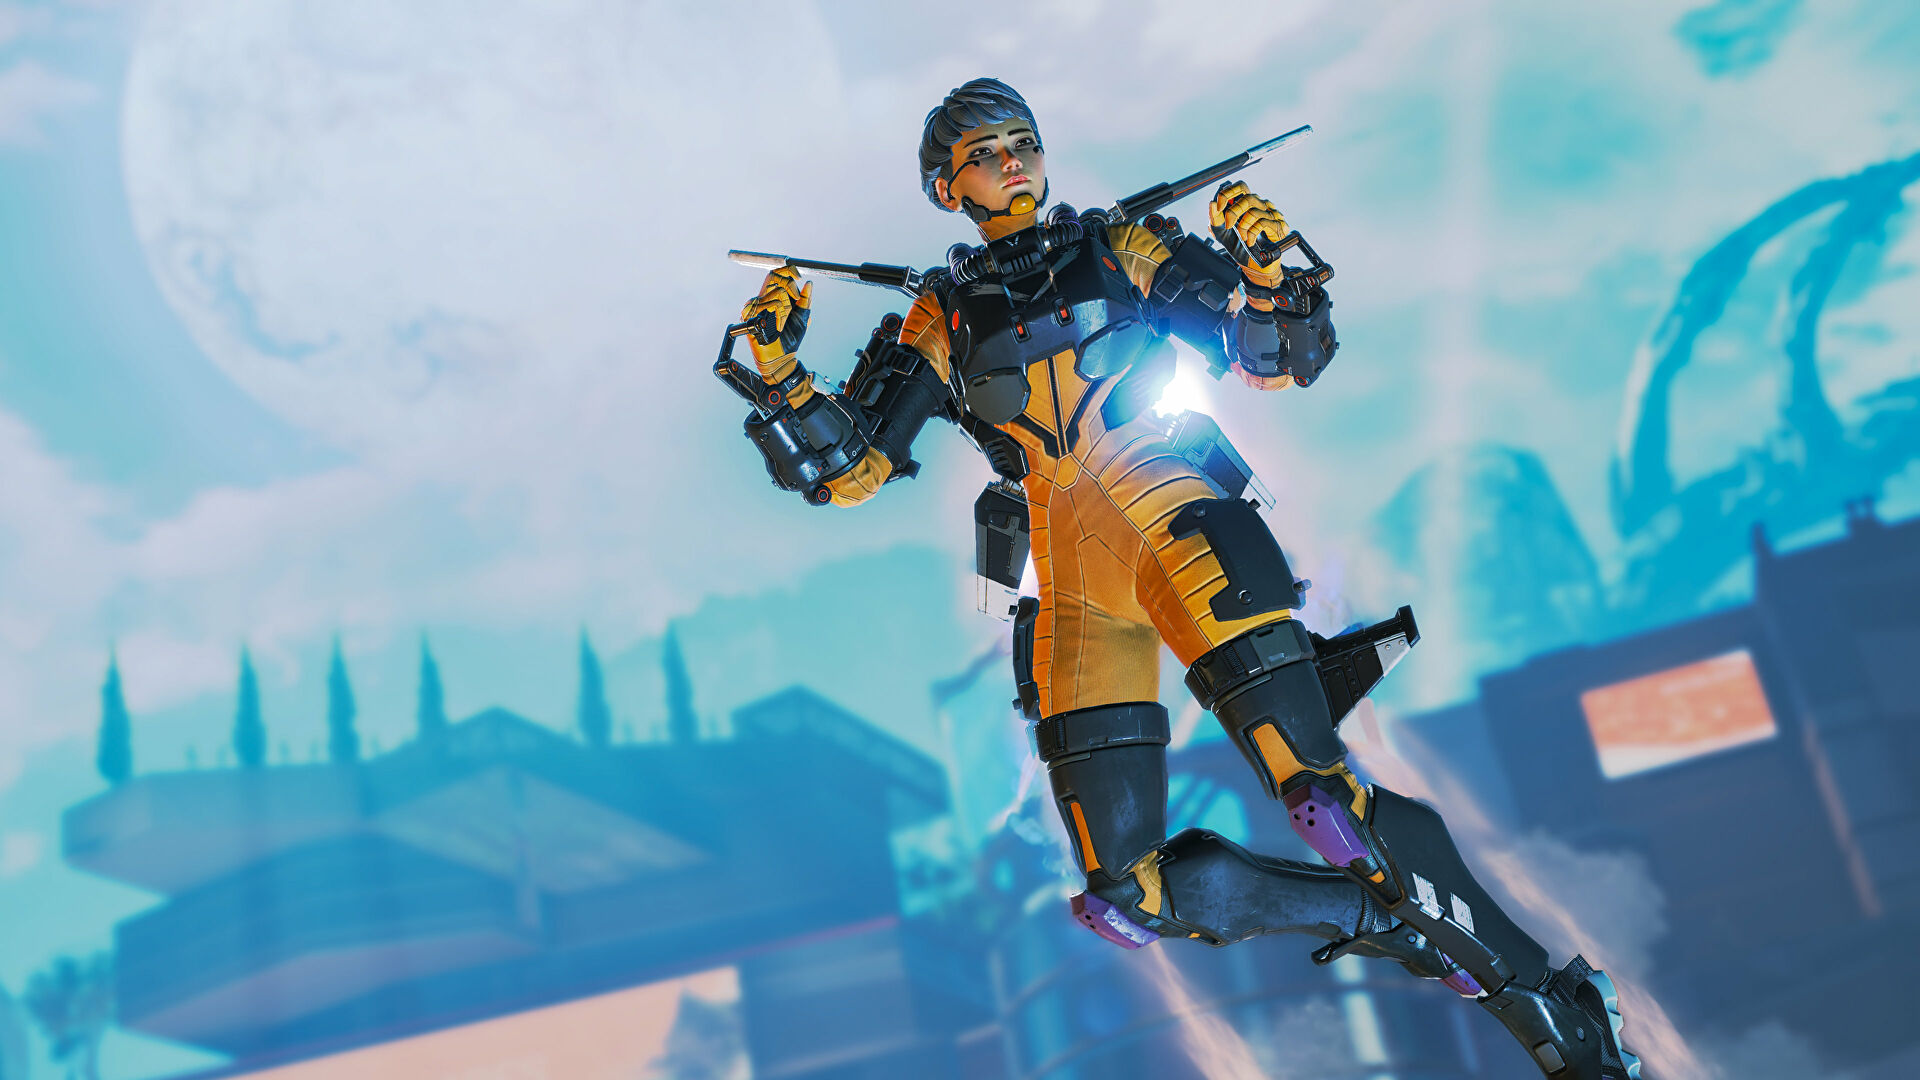 Valkyrie's ultimate is accidentally dragging Apex Legends players under the map